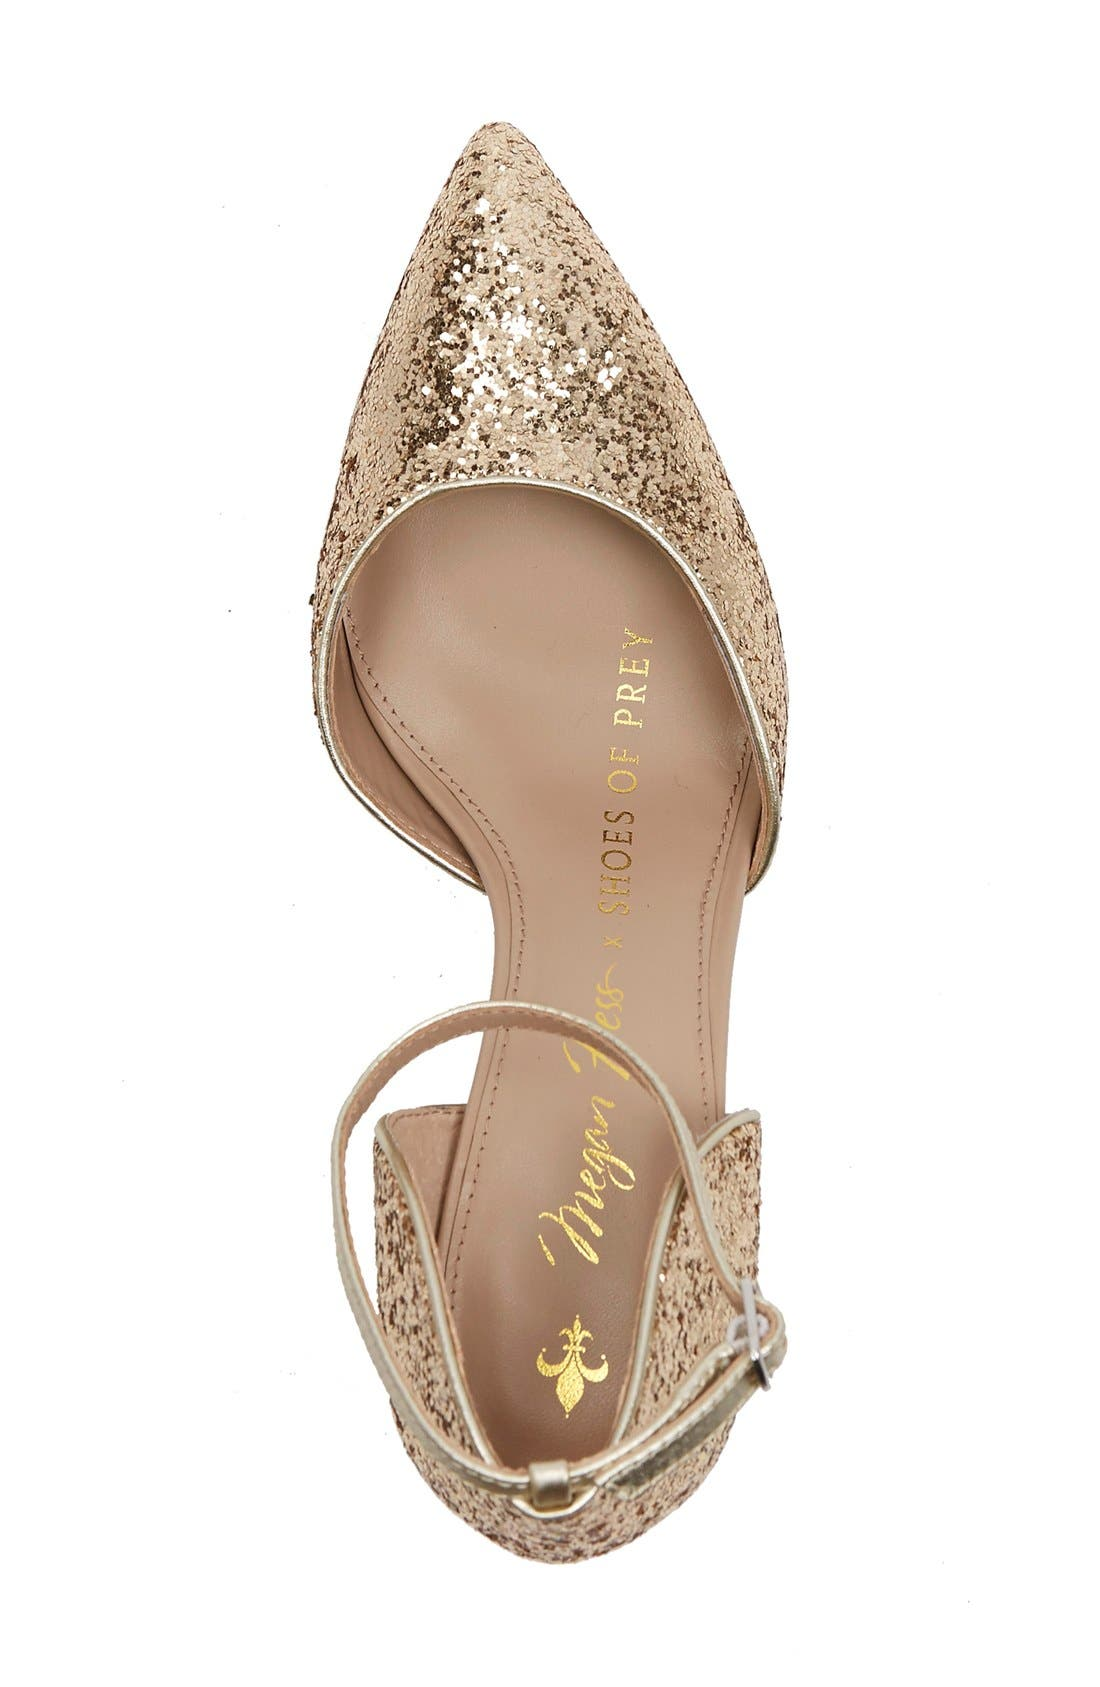 x Megan Hess Fleur-de-lis Collection Pump,                             Alternate thumbnail 3, color,                             Gold Sparkle